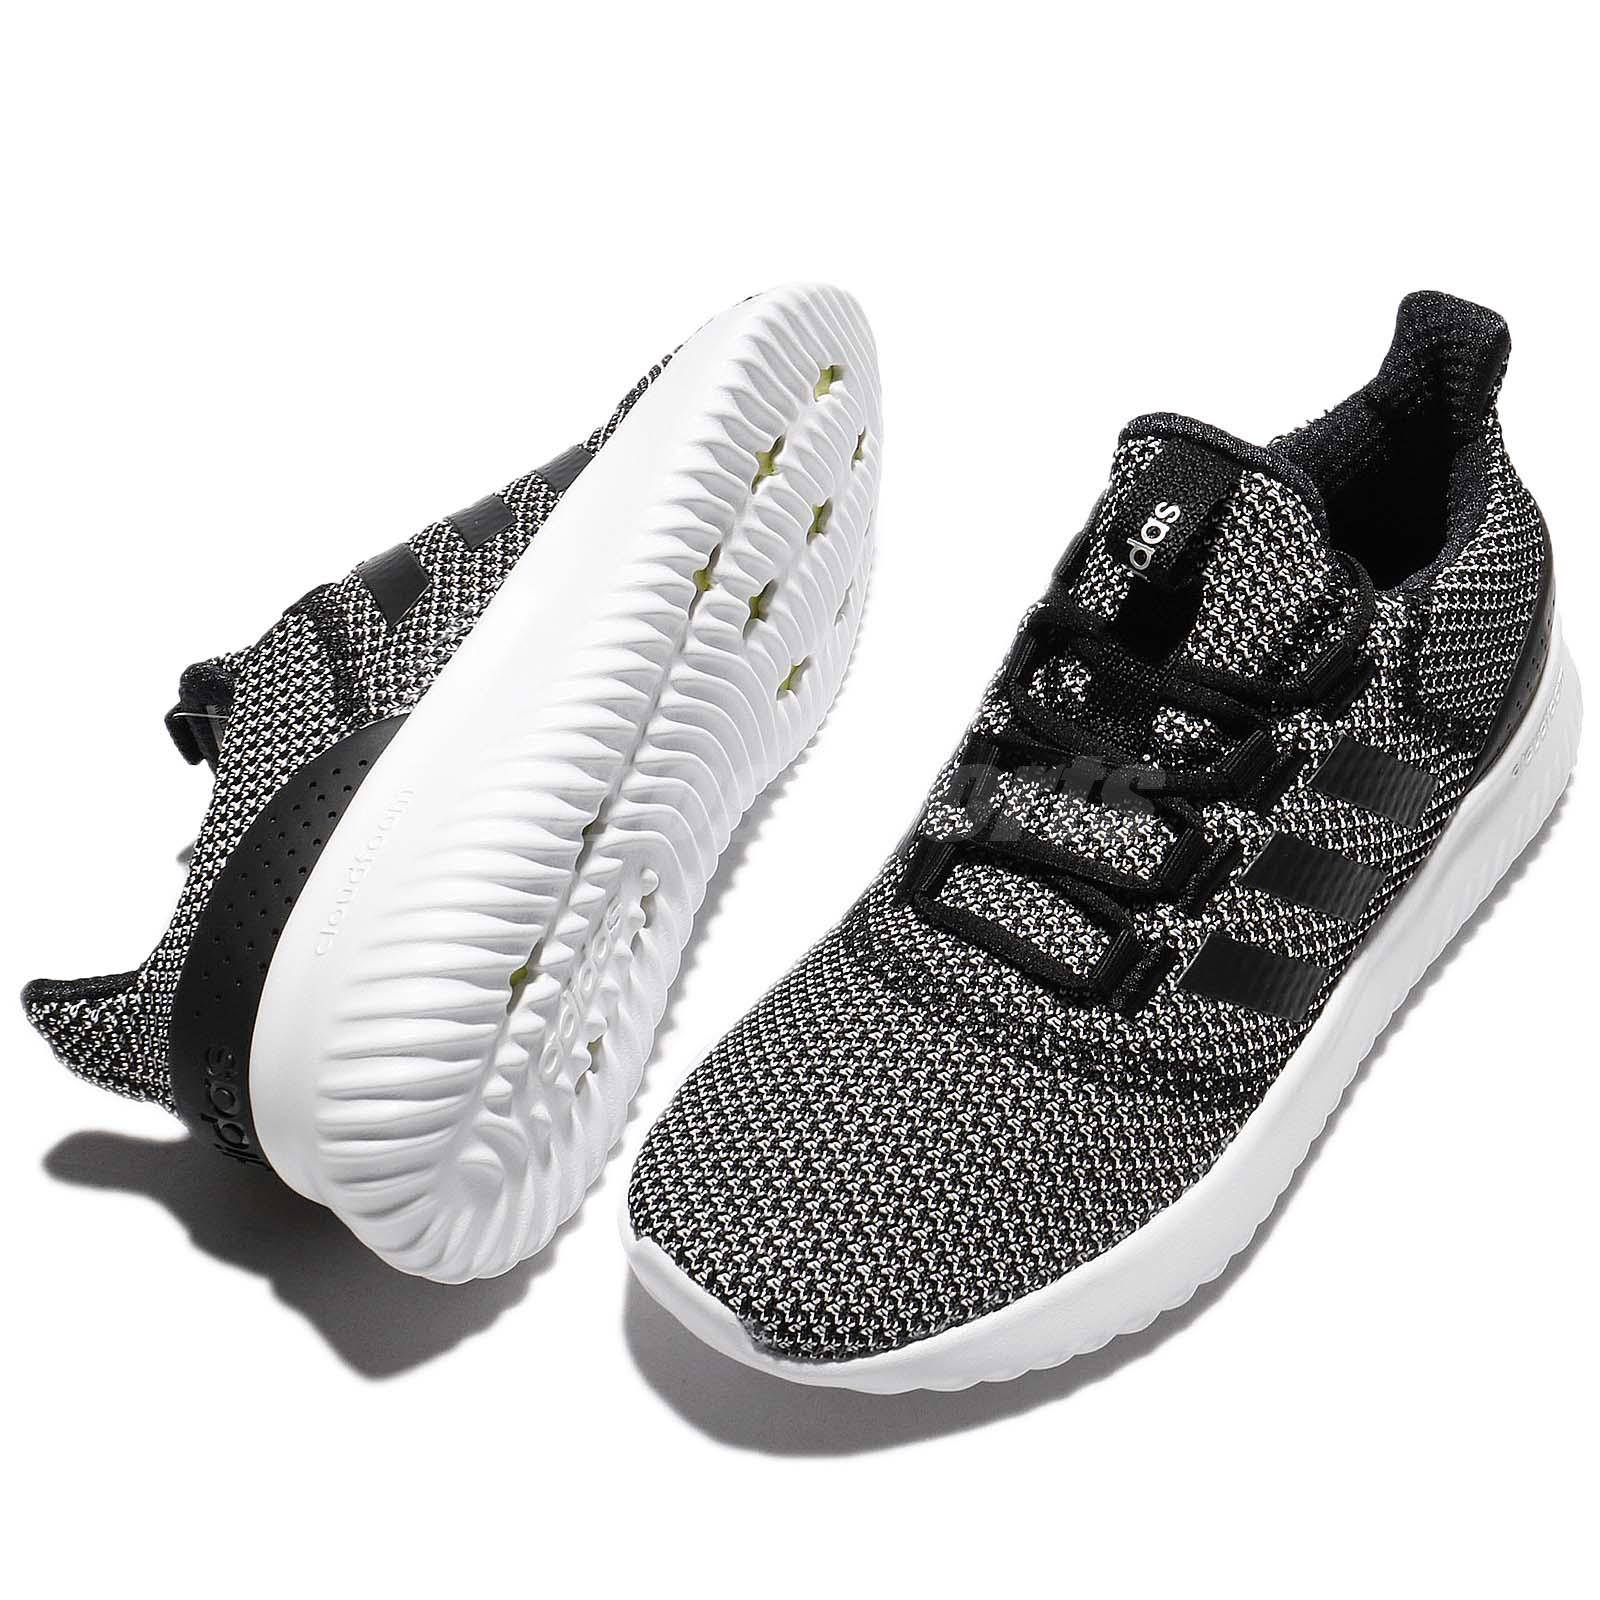 promo code cce78 2f3ad adidas Neo Cloudfoam Ultimate Black White Women Running Shoe